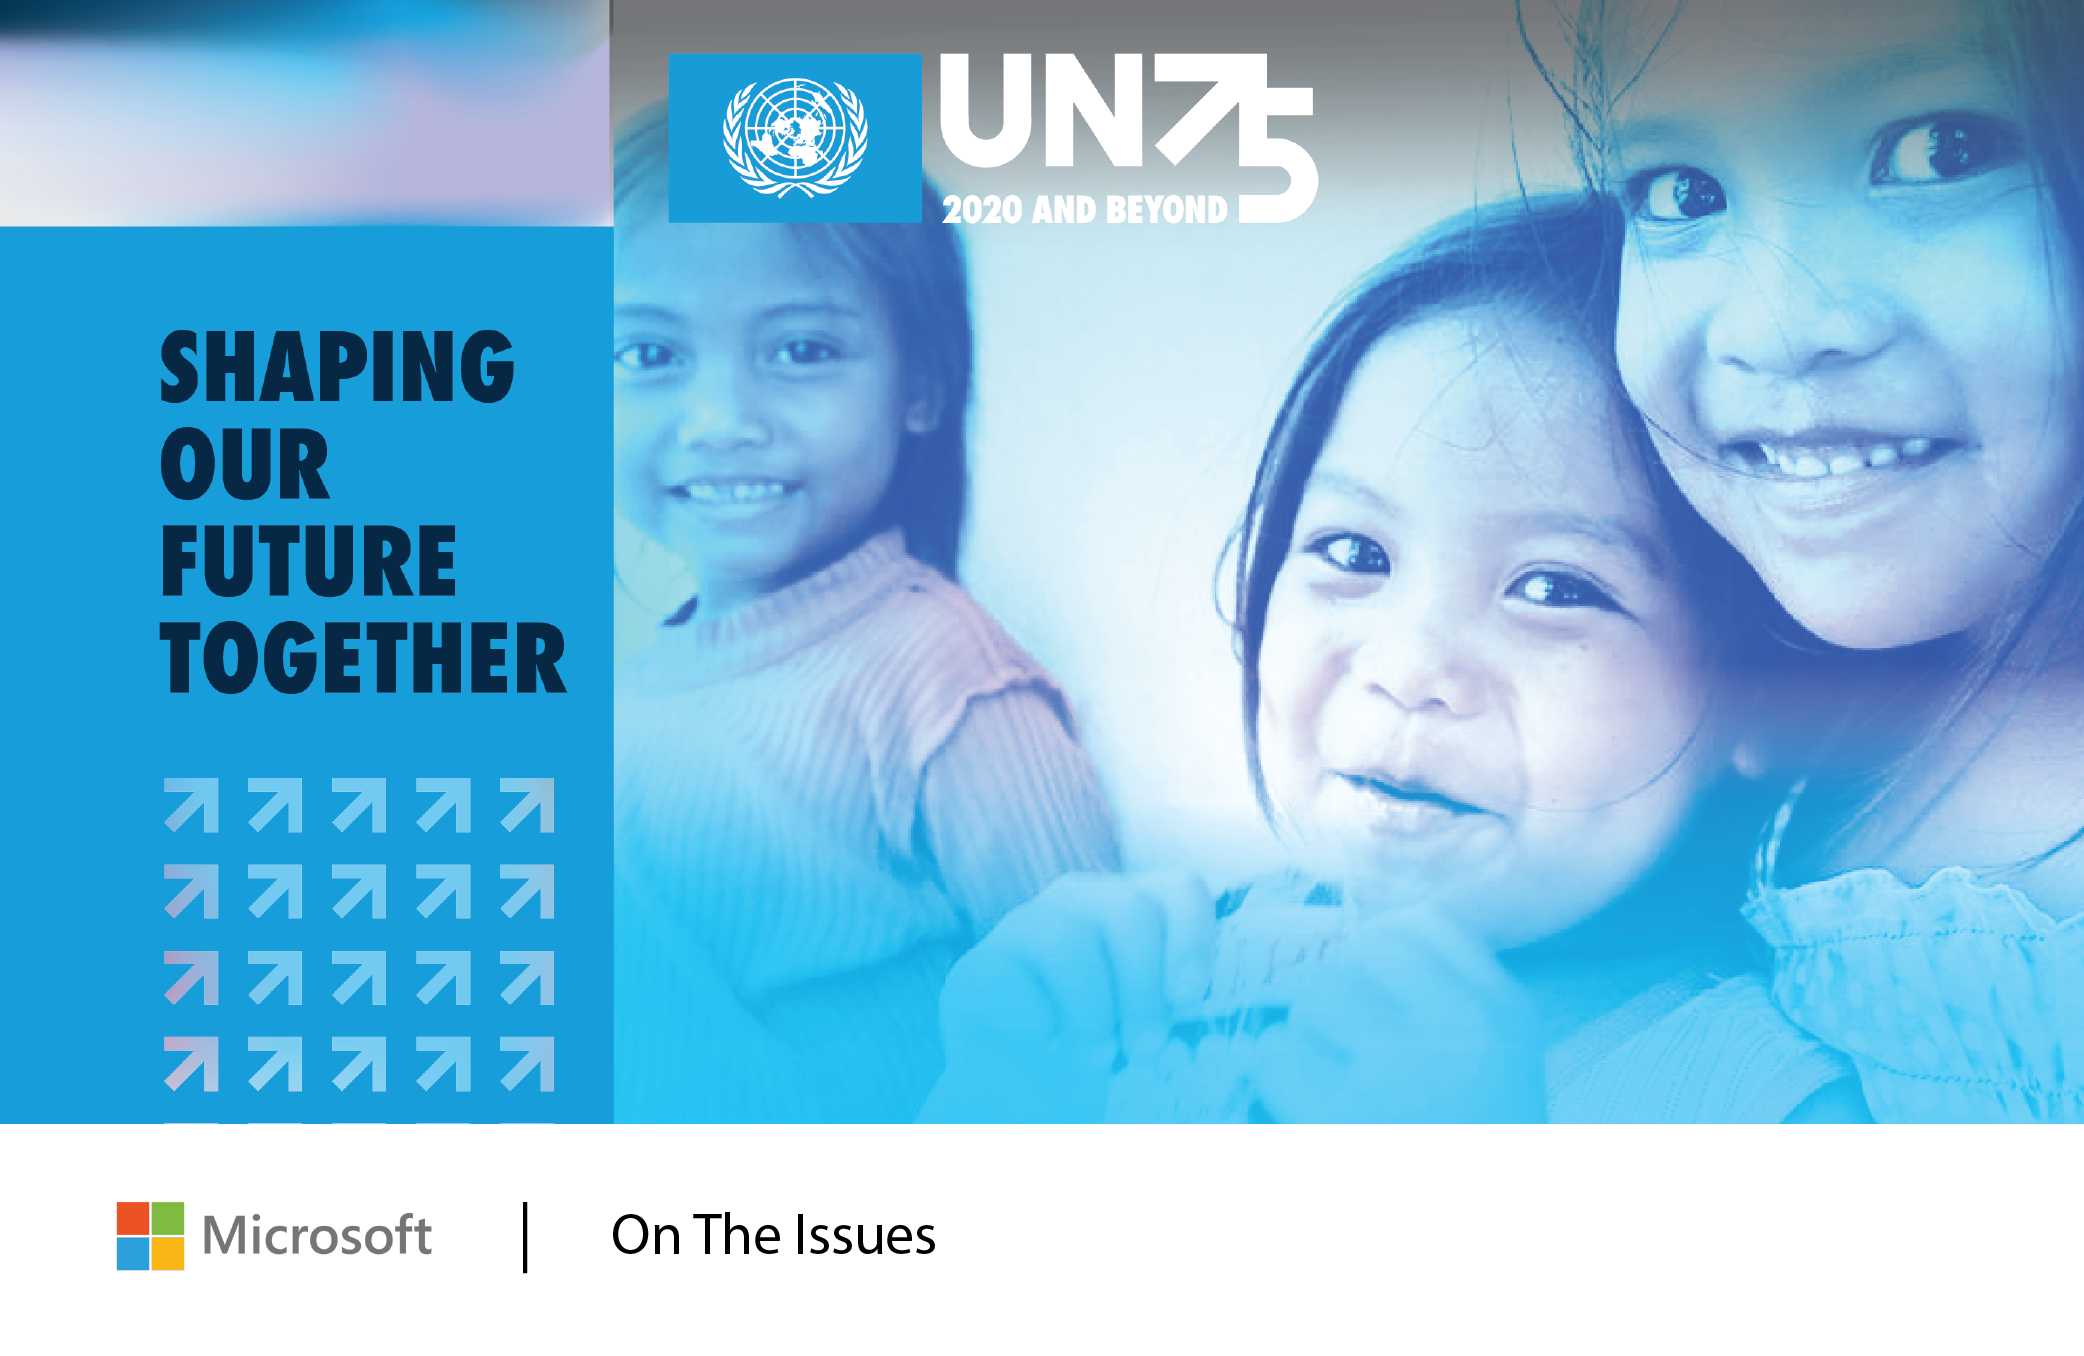 Be the change, have a say in the future of the UN